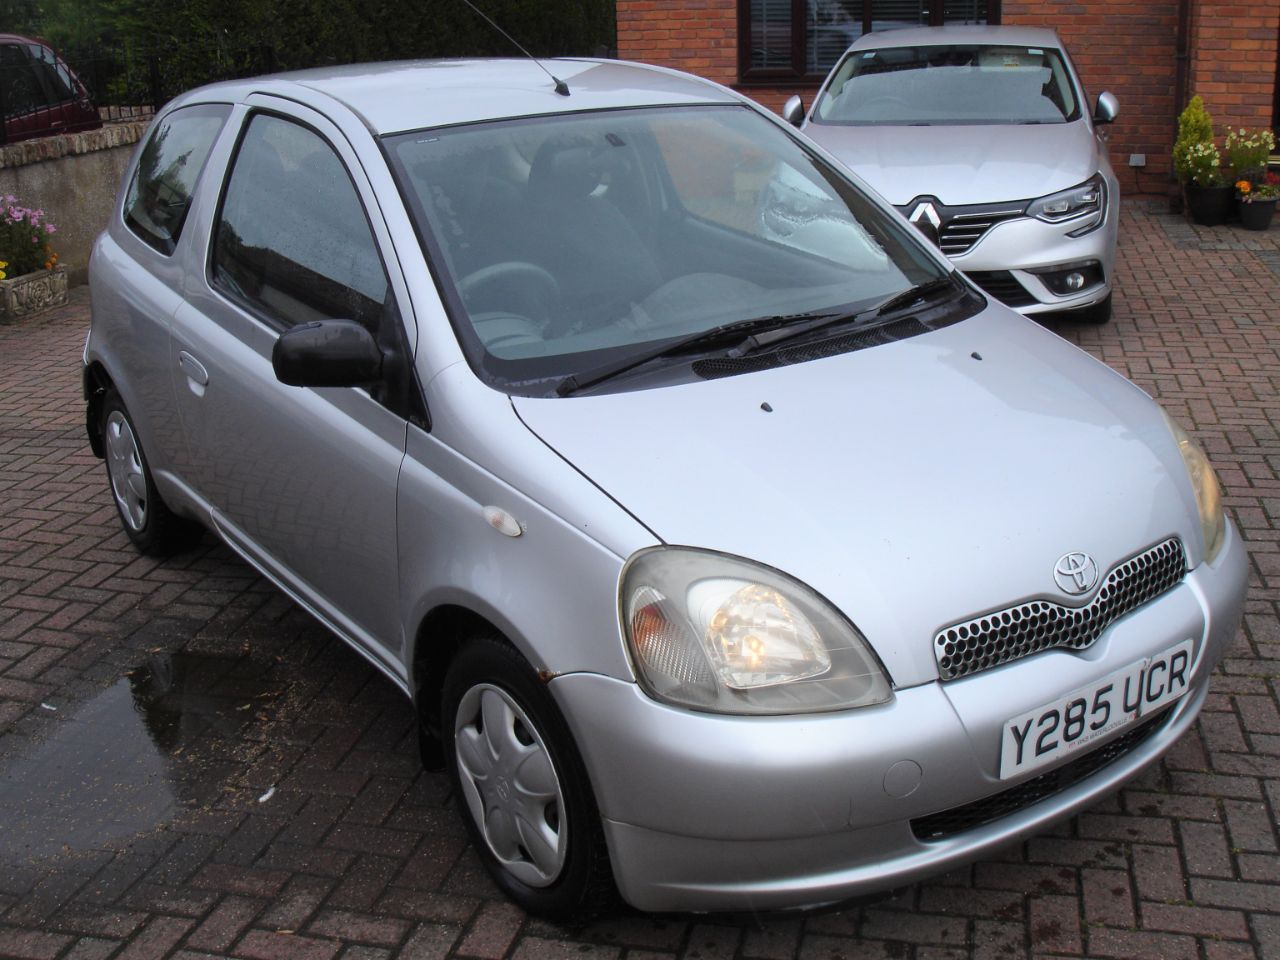 Toyota Yaris 1.0 16v VVTi GLS 3dr [AC] Hatchback Petrol Silver at Level Pitch Selby